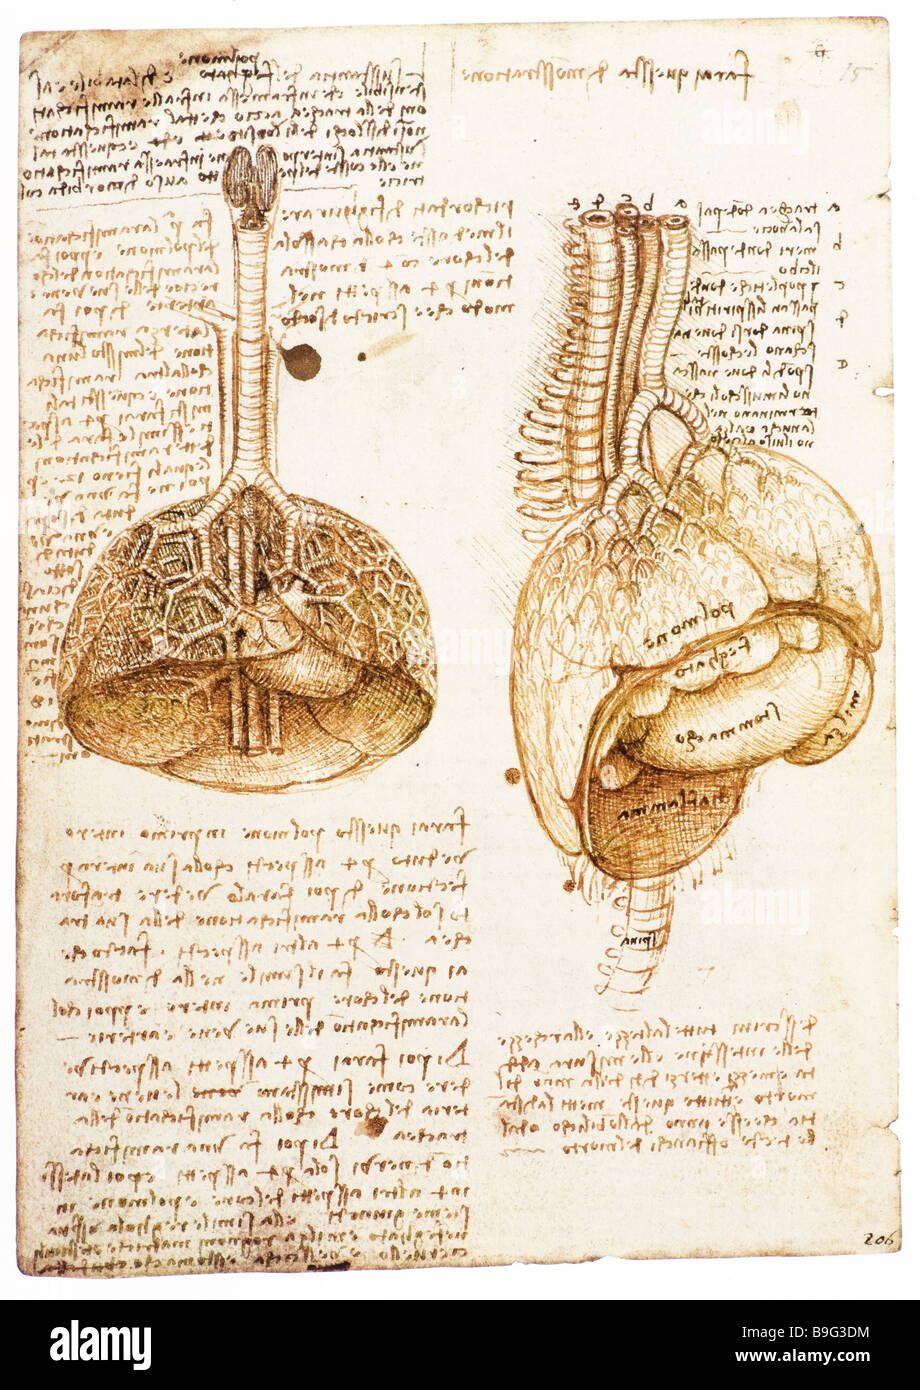 Lungs, heart, abdominal organs of a pig by Leonardo da Vinci  1508 - Stock Image